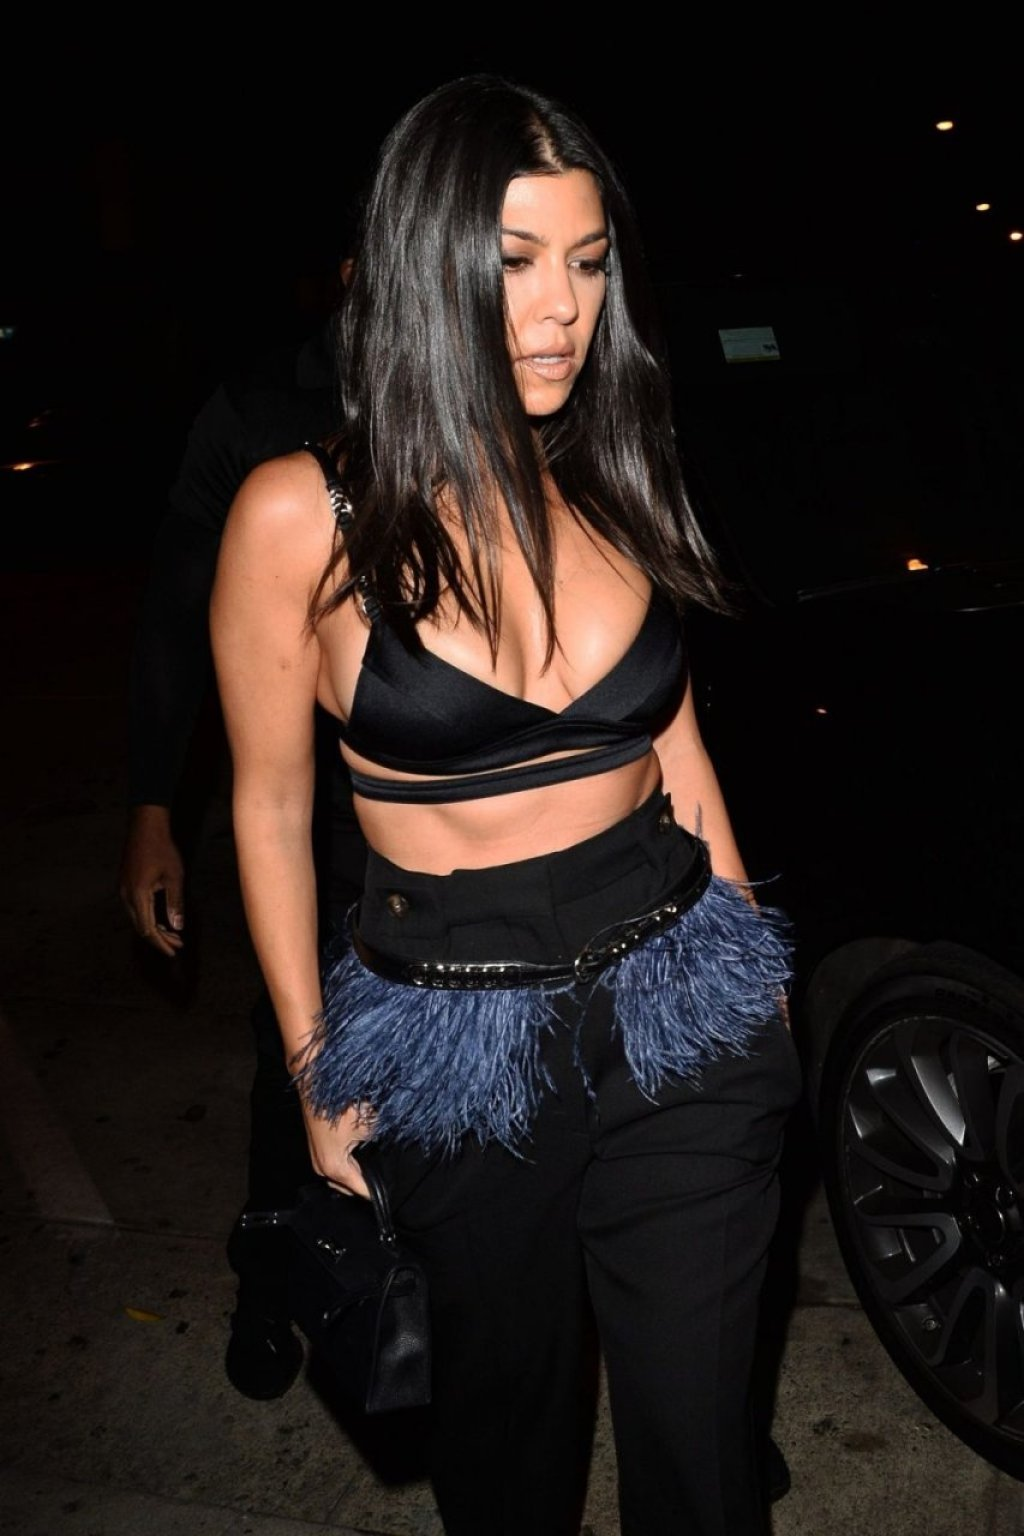 Kourtney Kardashian Sexy (77 Photos)